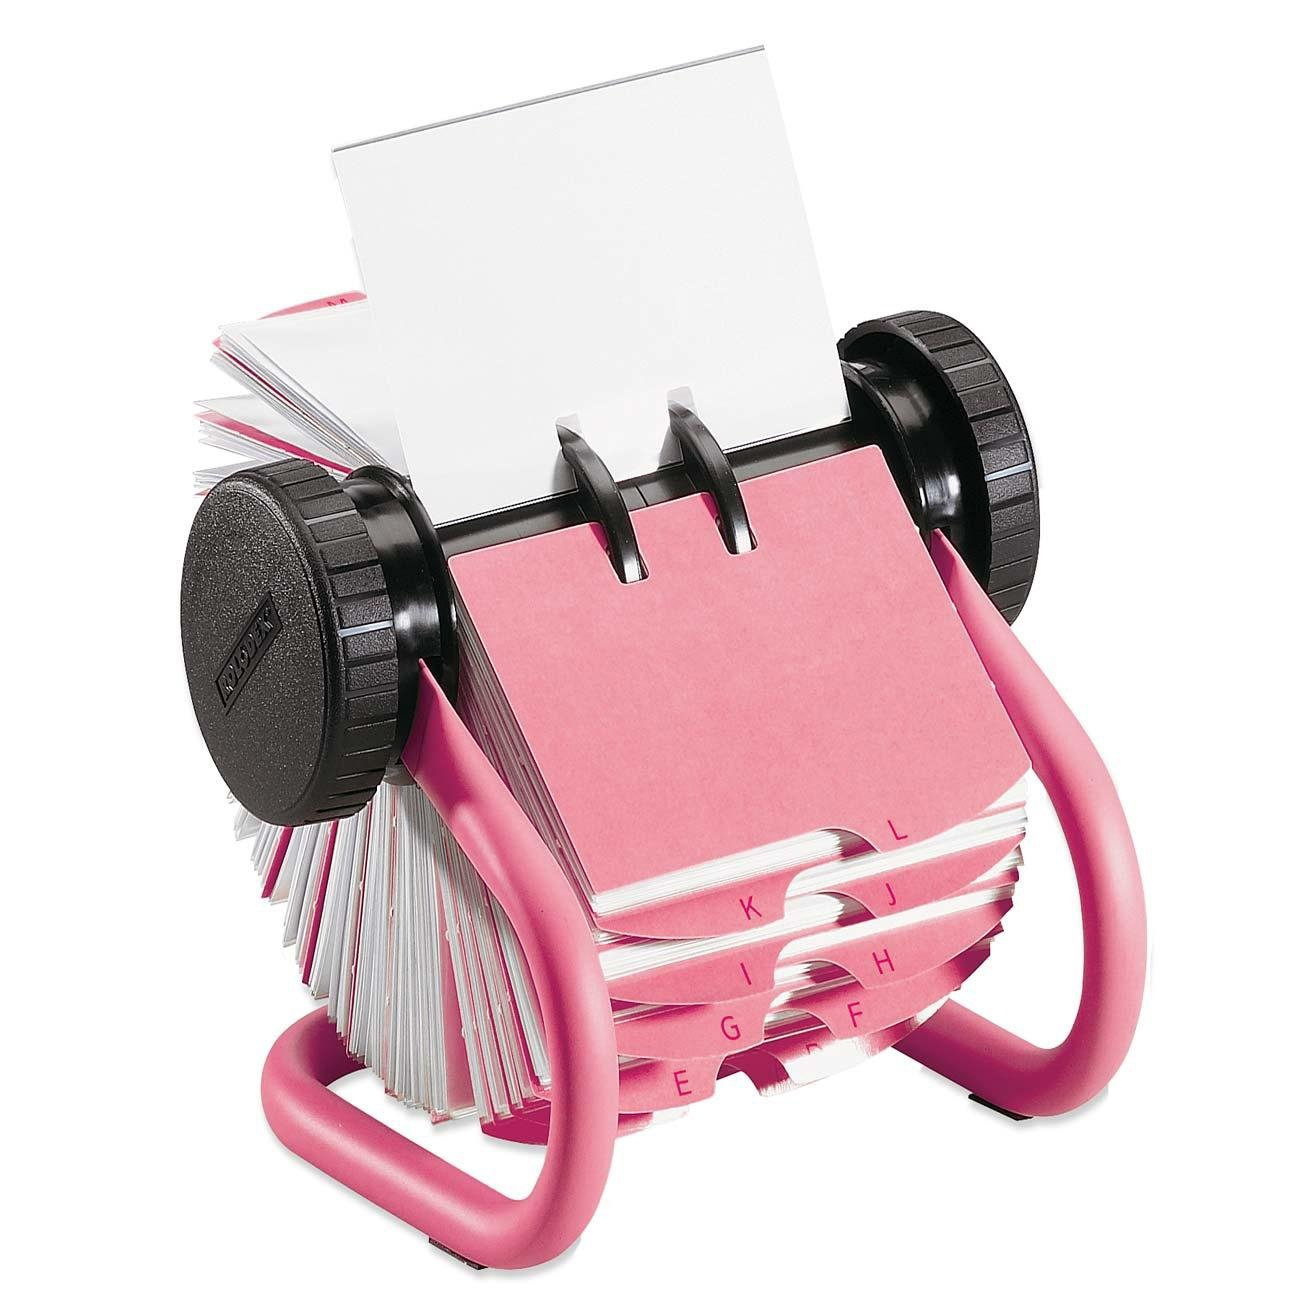 Rolodex Pink Metal Rotary Business Card File, 400 2-5/8 Inches x 4 Inches Card Capacity (55577)